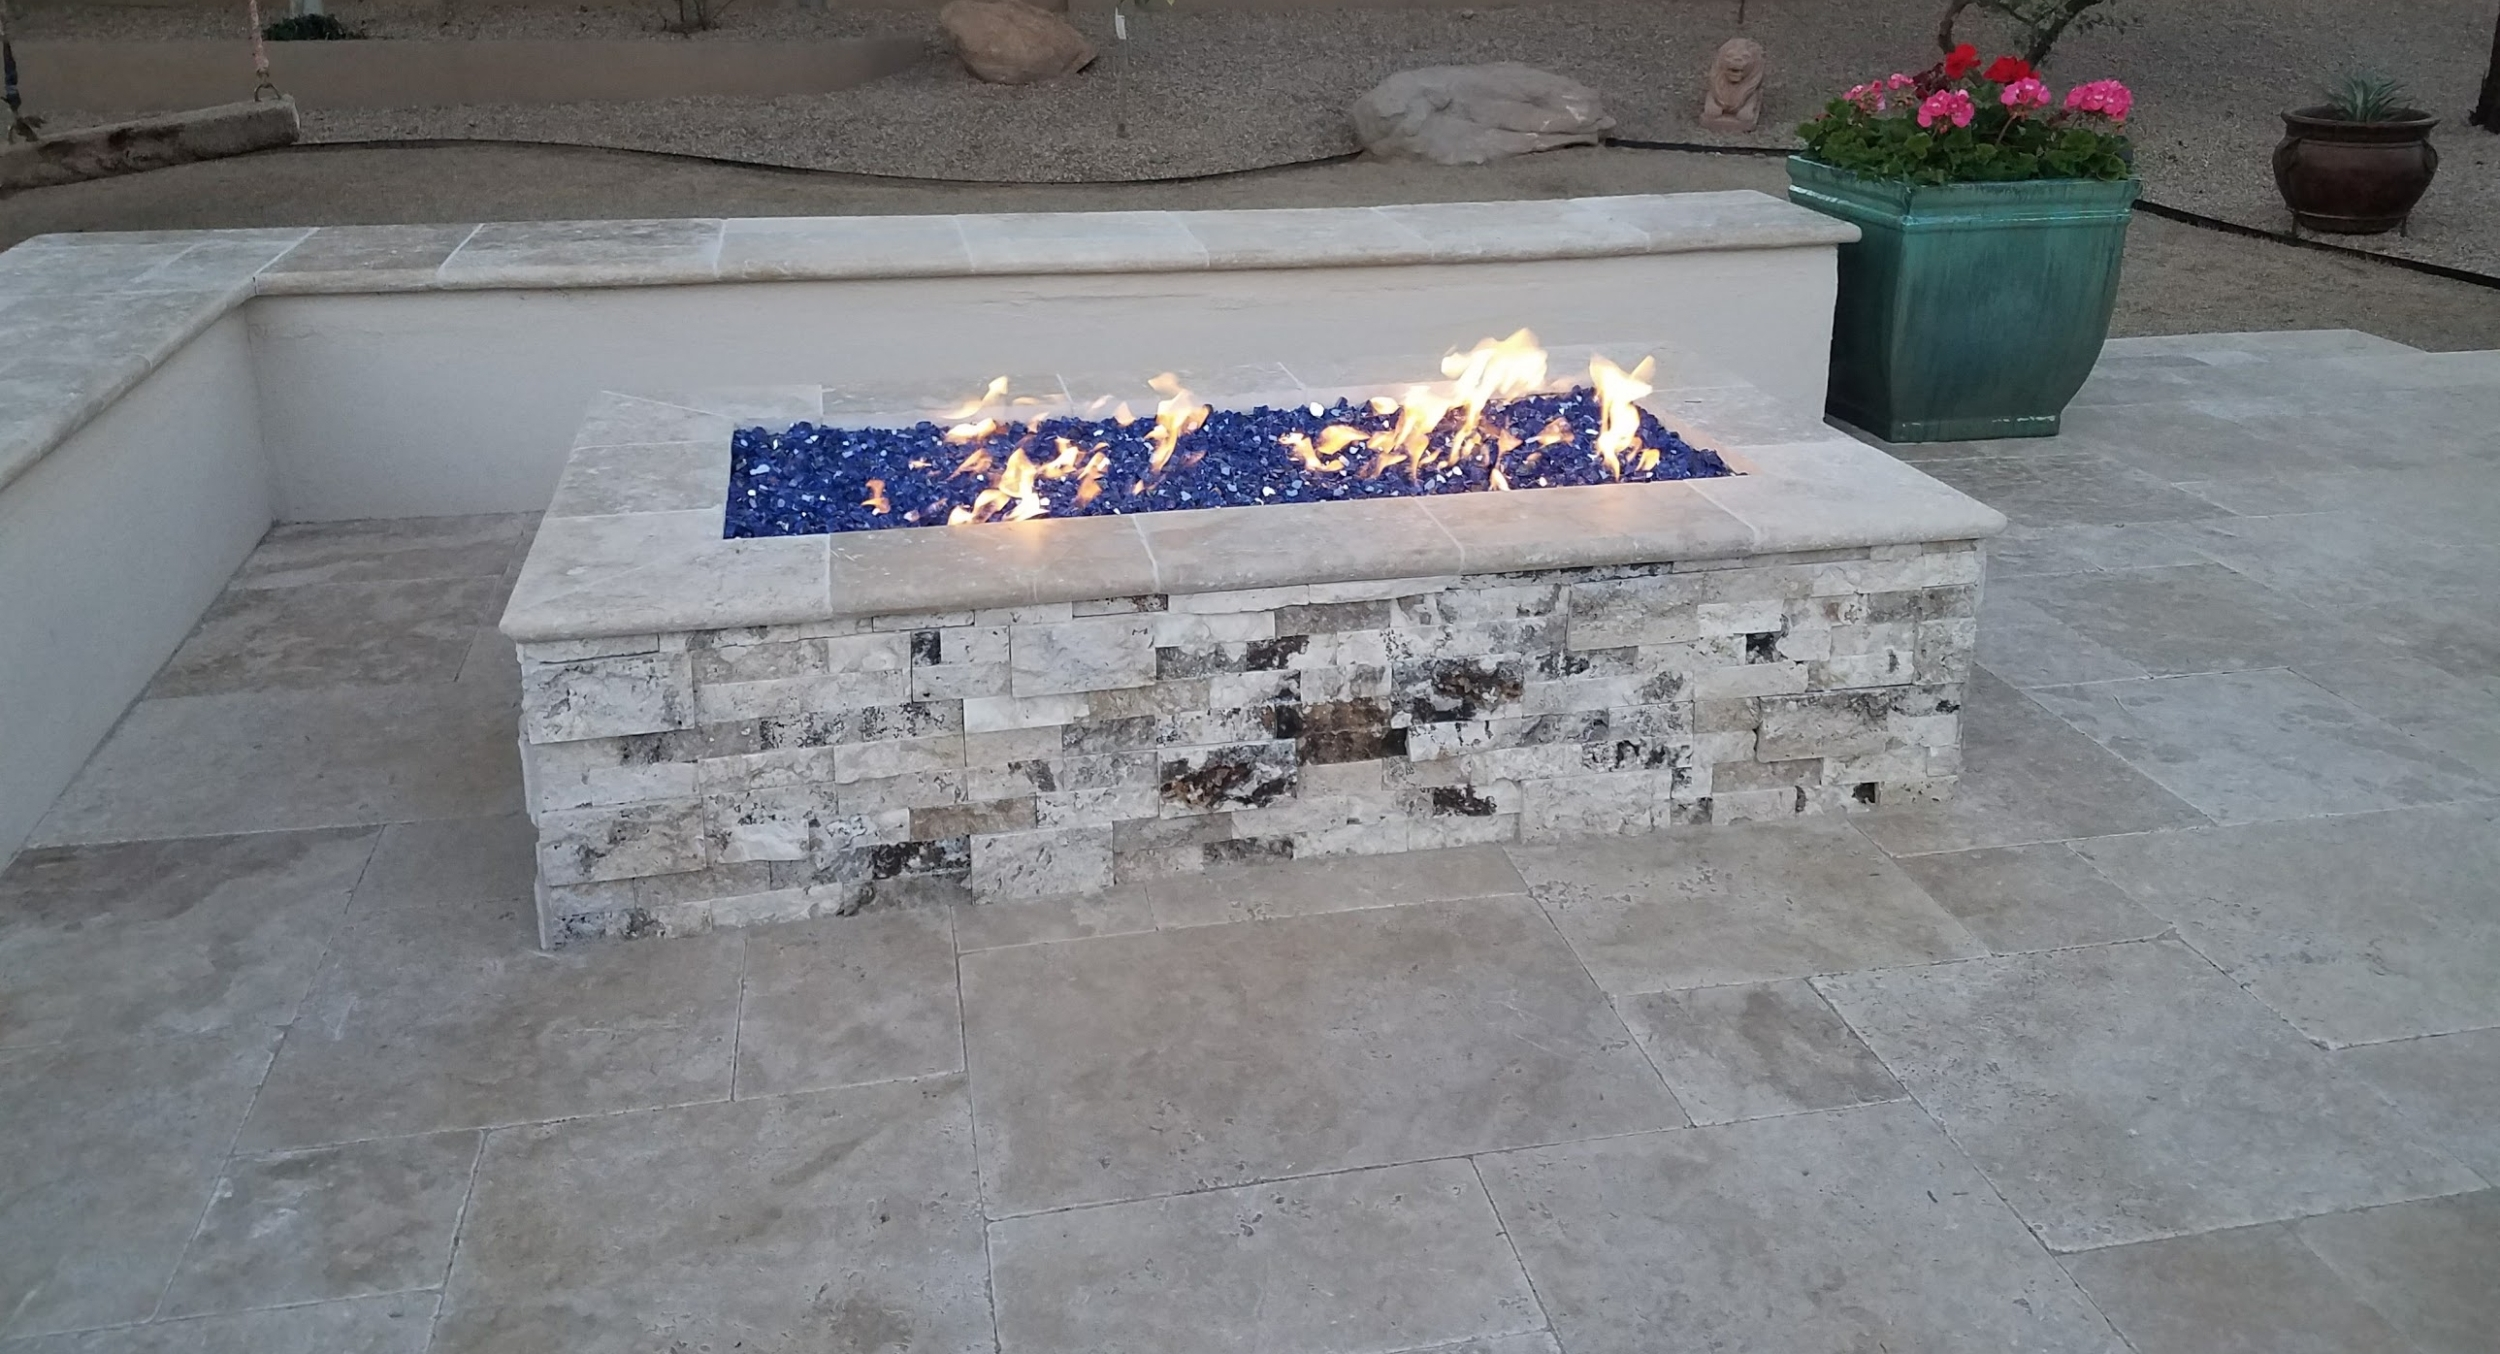 Add some extra sparkle to that new patio with next gen Phoenix fire pit design. Cobalt blue Fire Glass is gorgeous flaming or not.